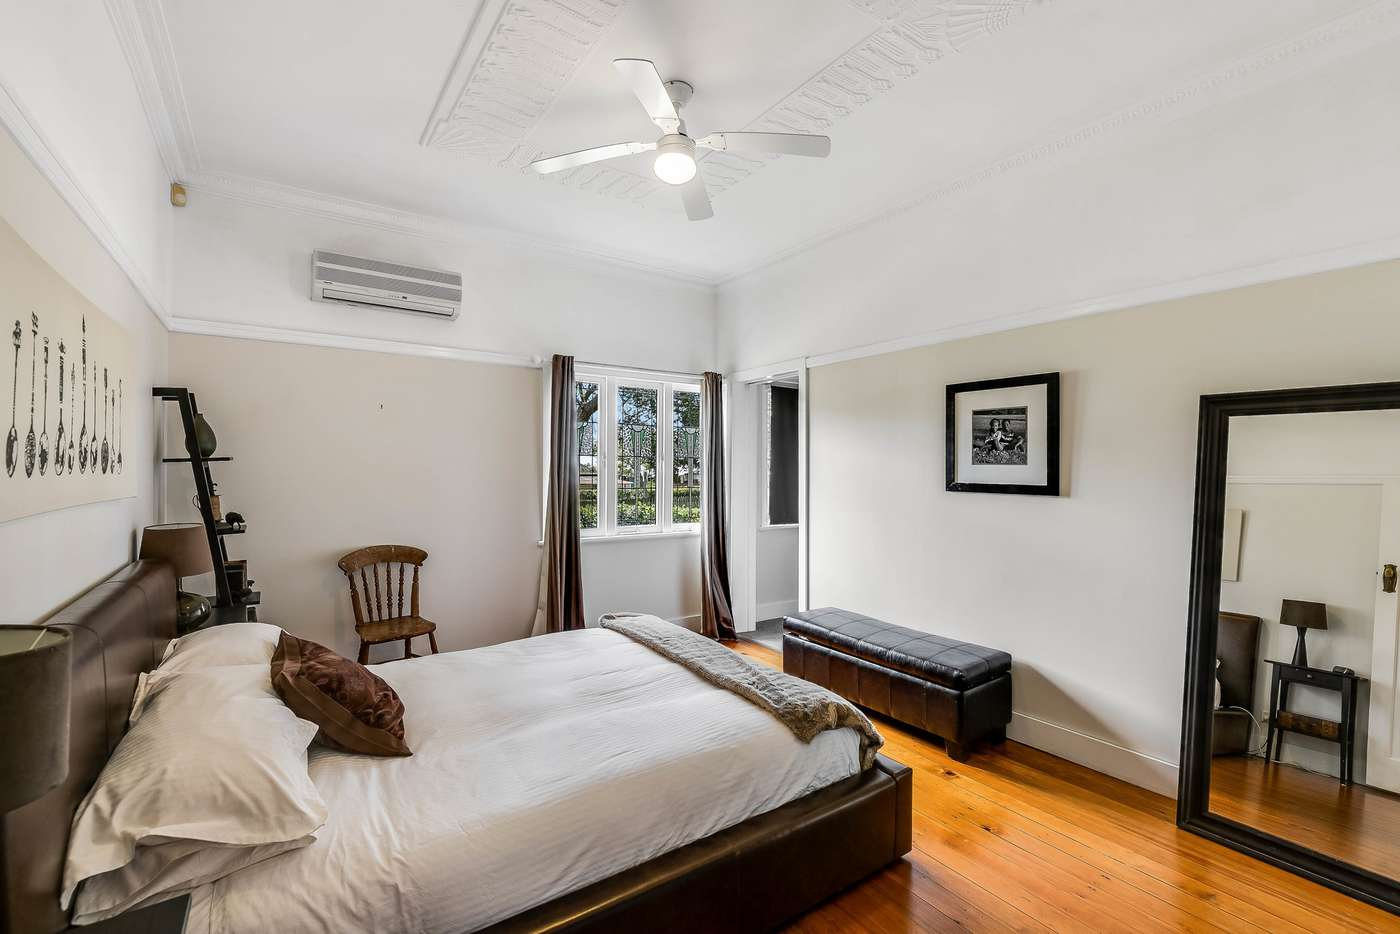 Fifth view of Homely house listing, 56 Curzon Street, East Toowoomba QLD 4350